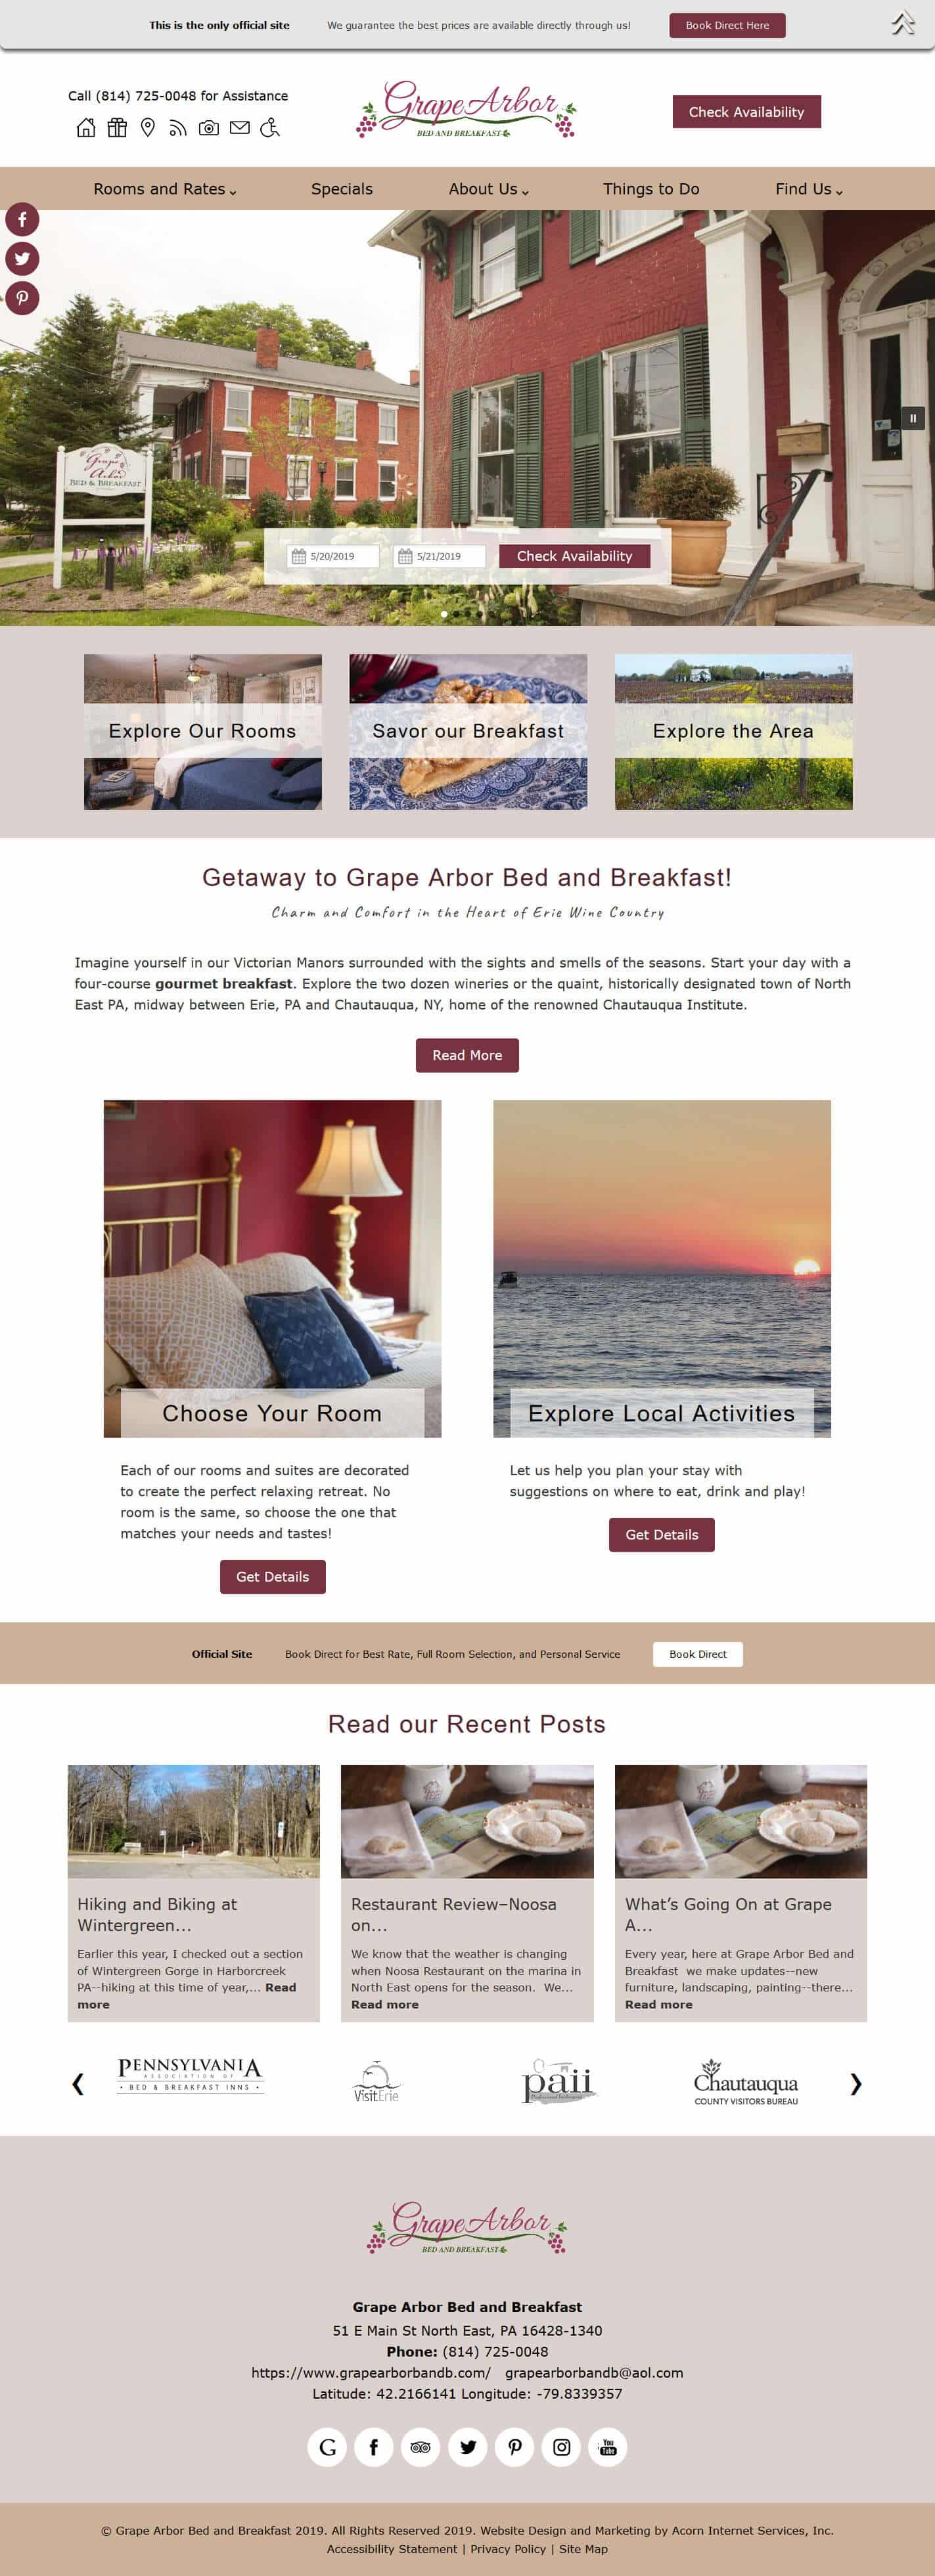 Grape Arbor Bed and Breakfast website home page